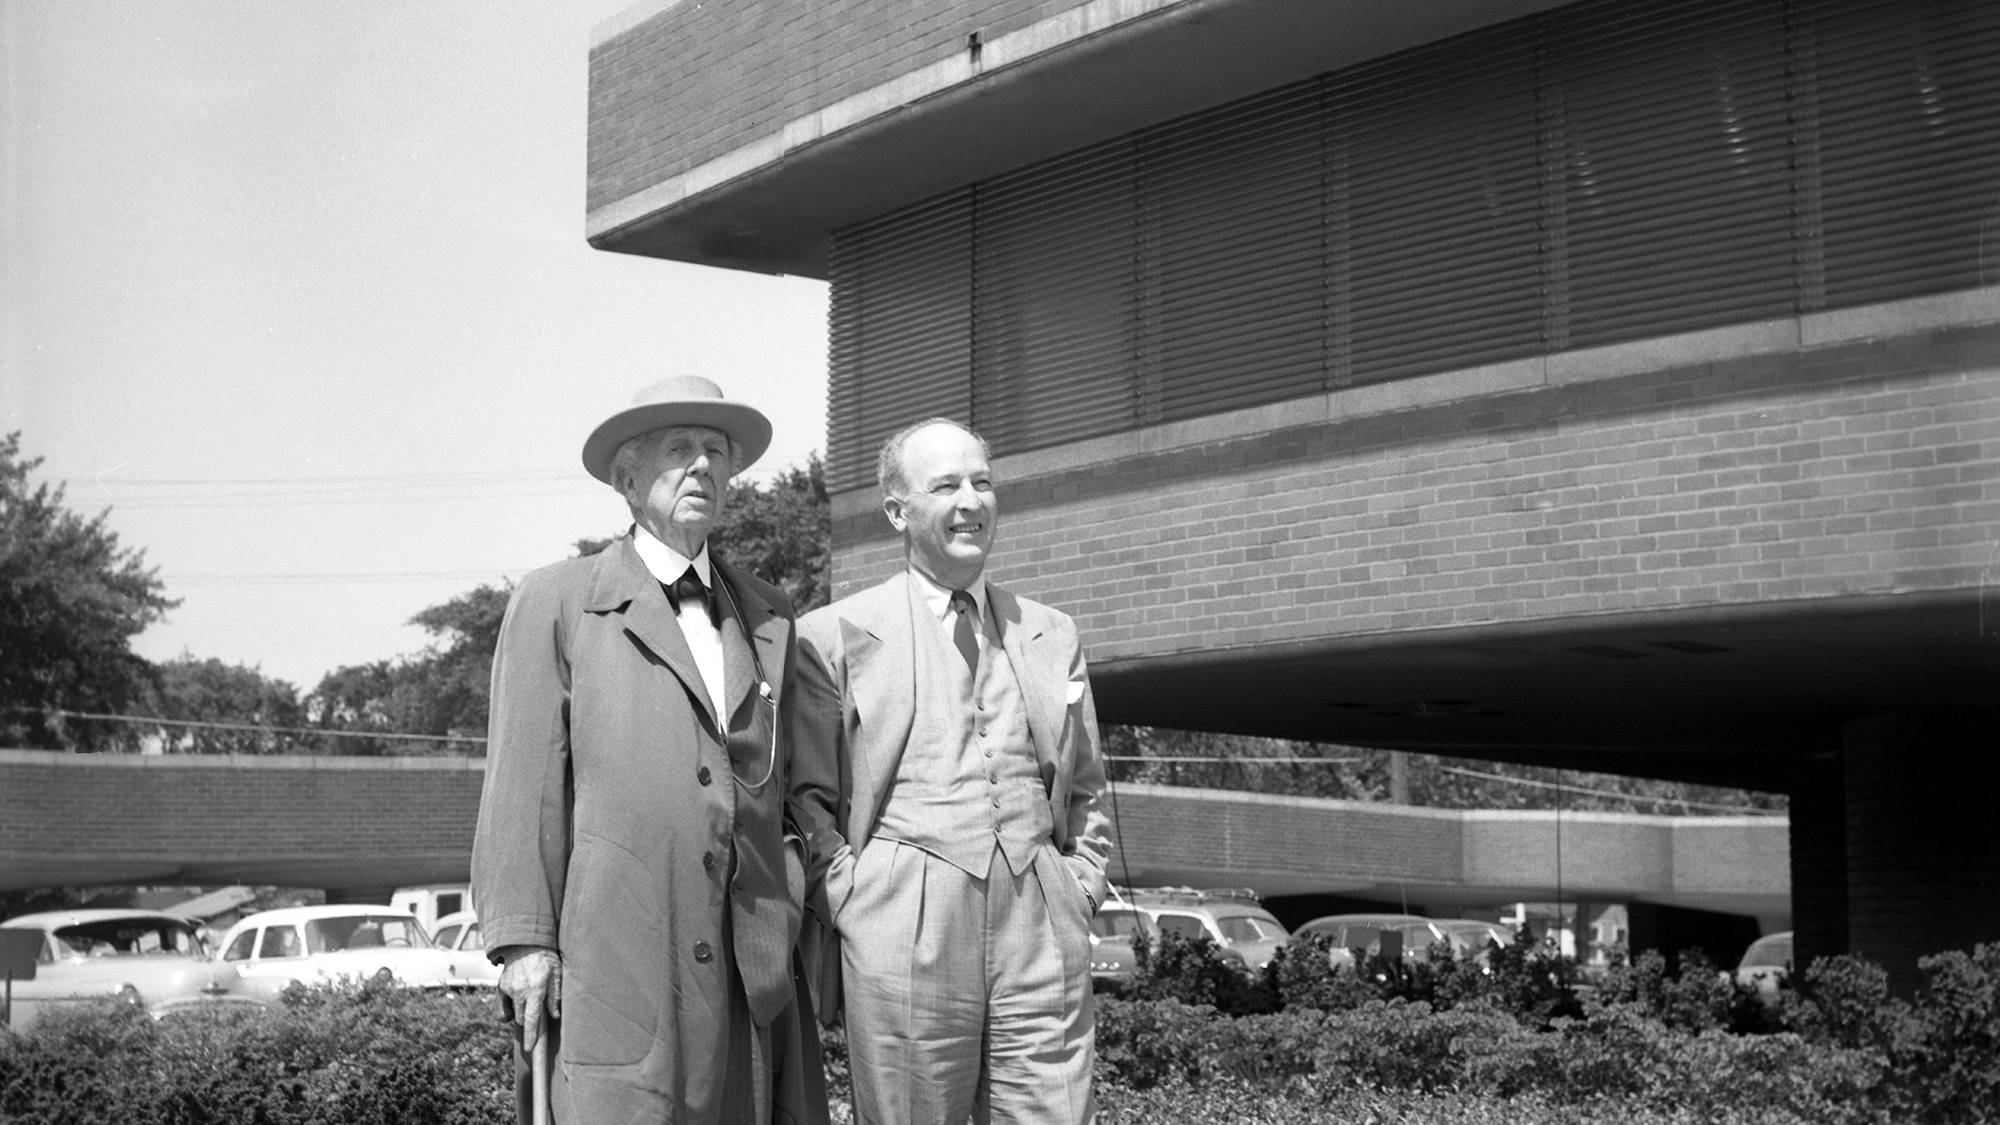 H. F. Johnson, Jr. und Frank Lloyd Wright.